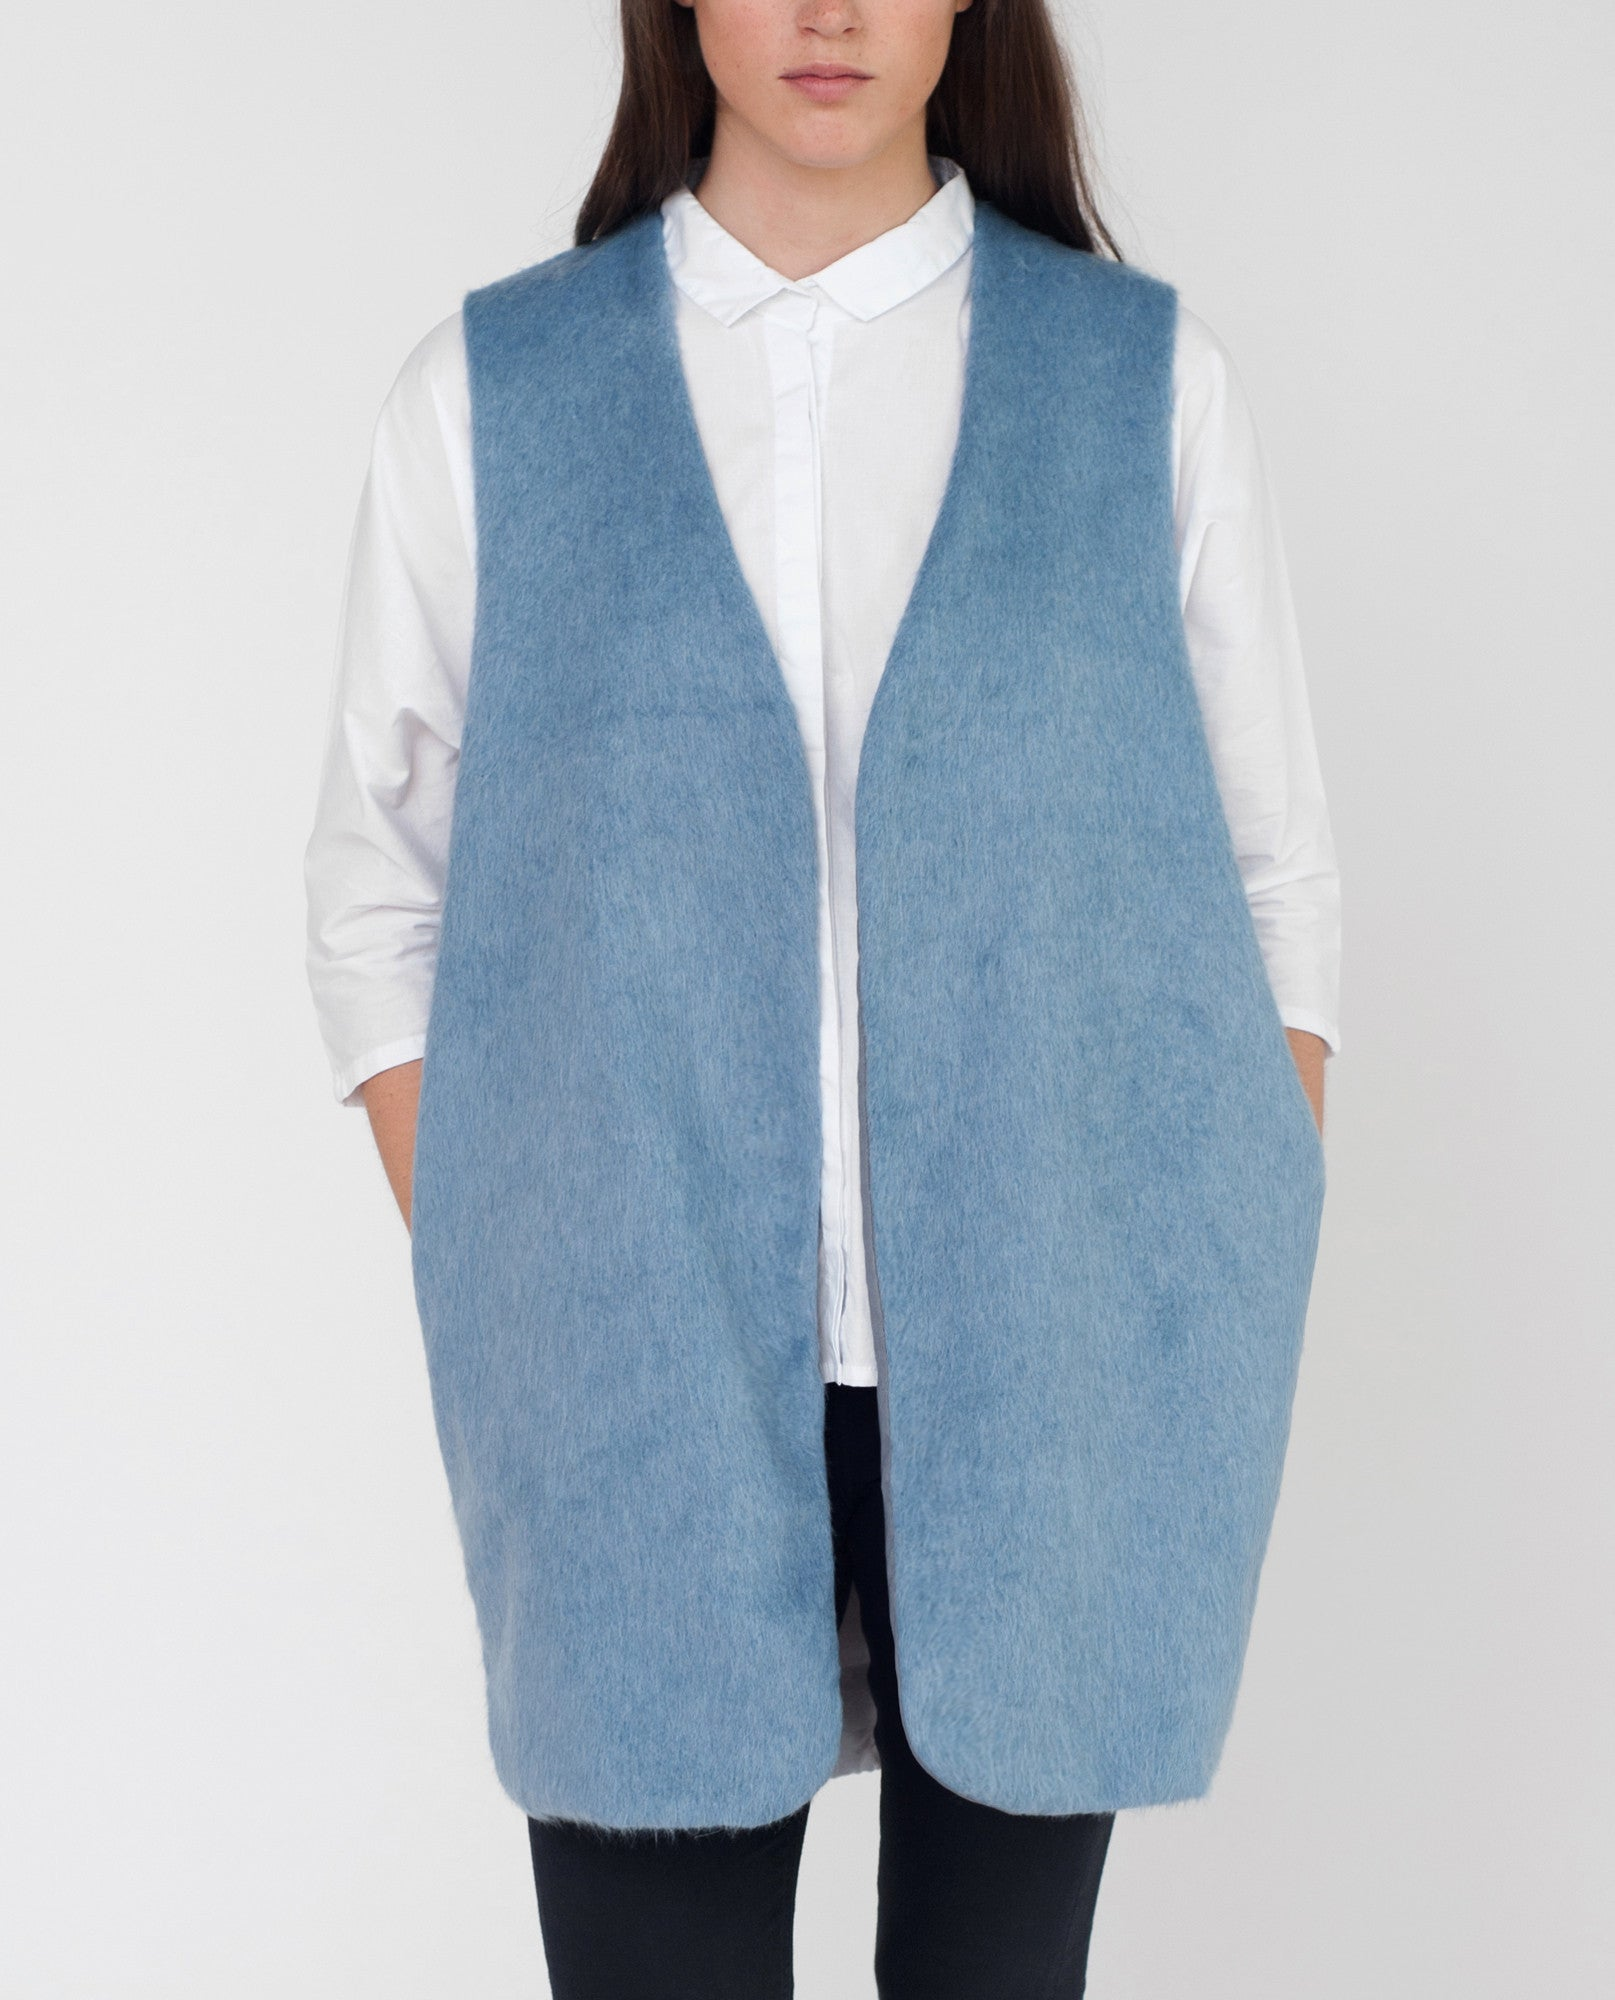 BRIA Faux Fur Gilet from Beaumont Organic